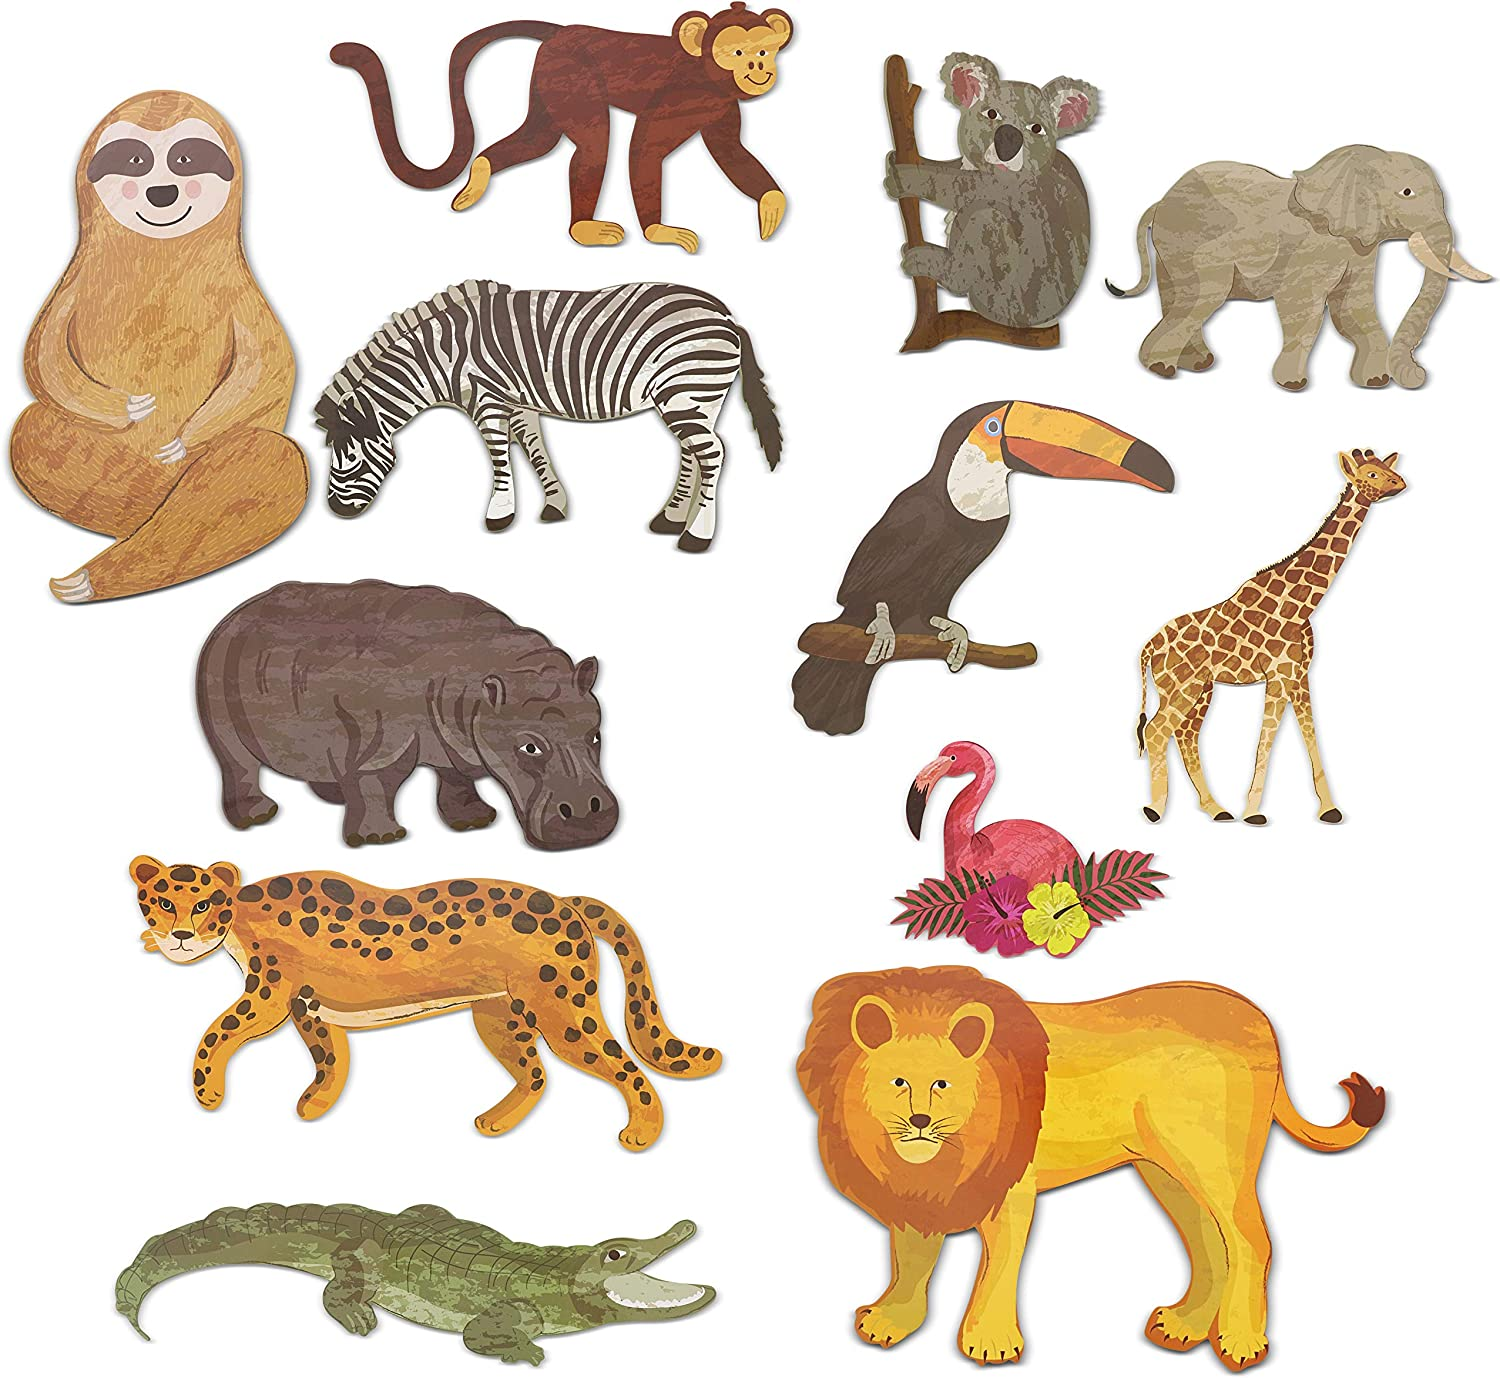 Jungle Animal Safari Paper Cutouts for Home and Party Decor (12-Count)